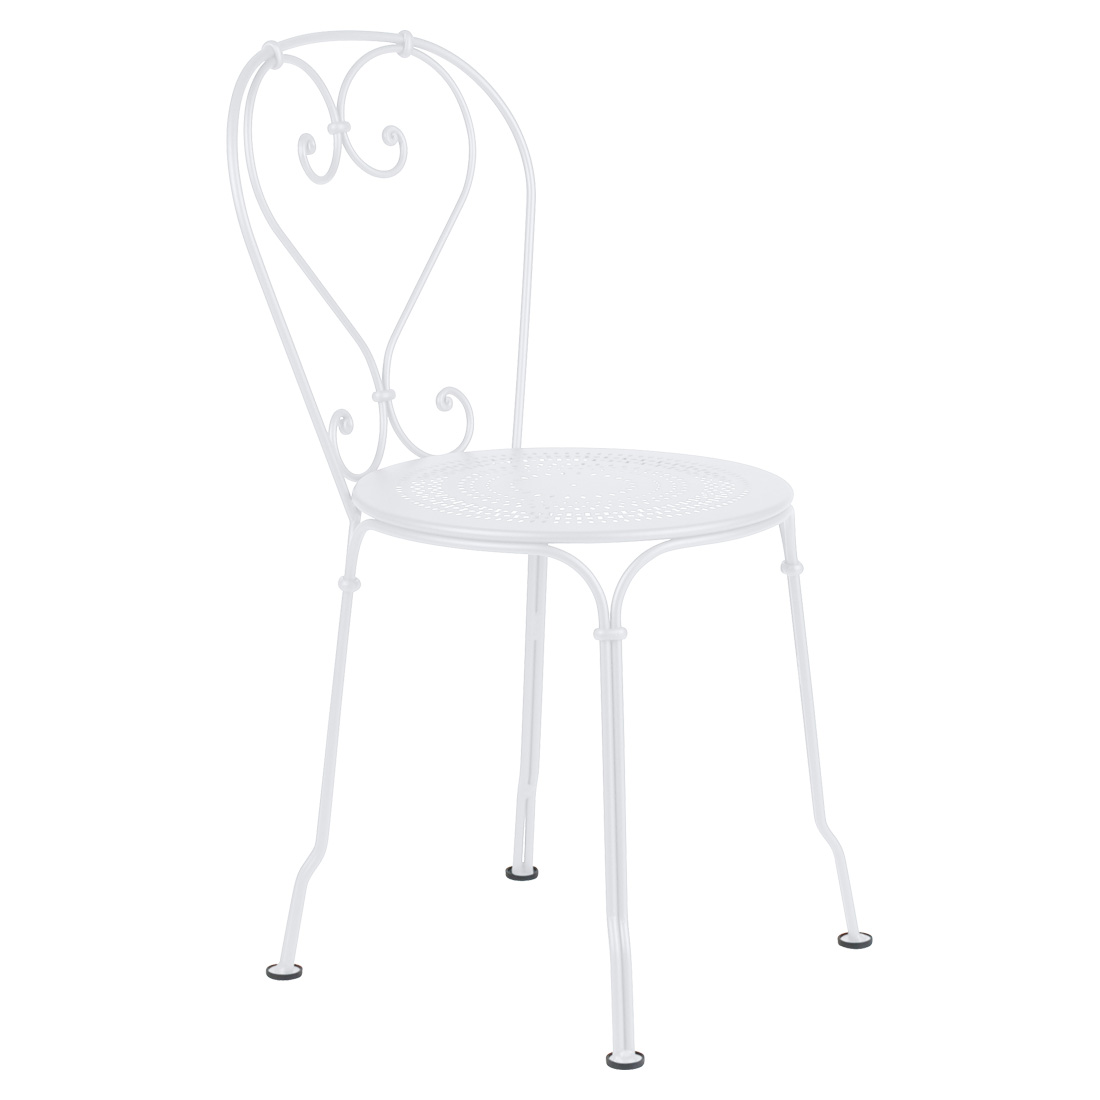 1900 Chair - Cotton White